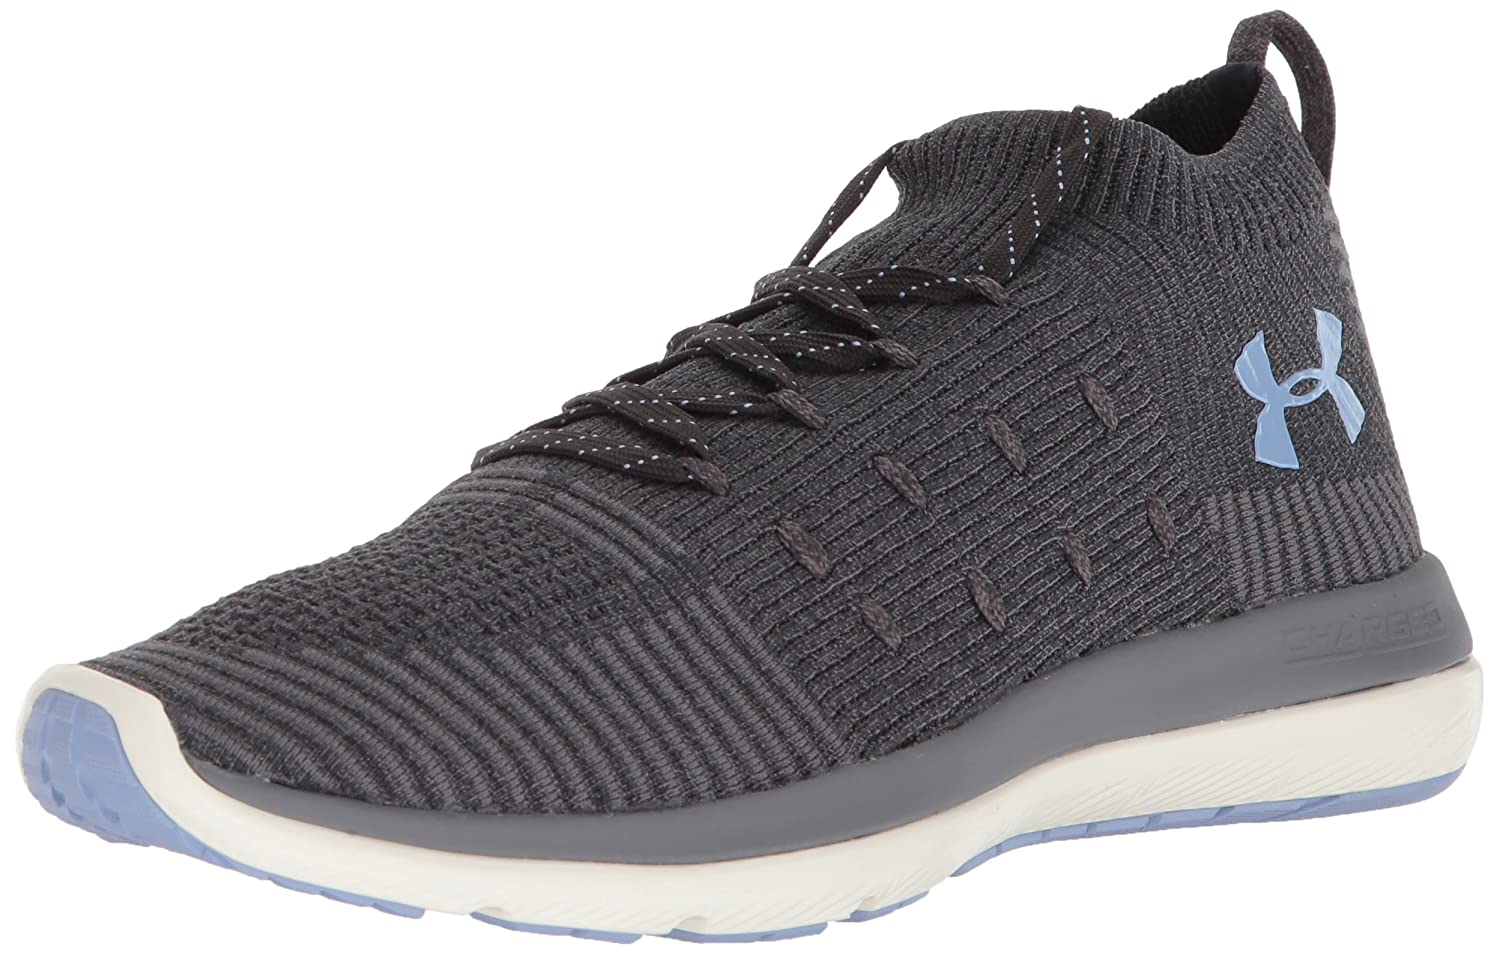 Under Armour Women's Slingflex Rise Sneaker B0728BZXBM 6.5 M US|Anthracite (102)/Graphite